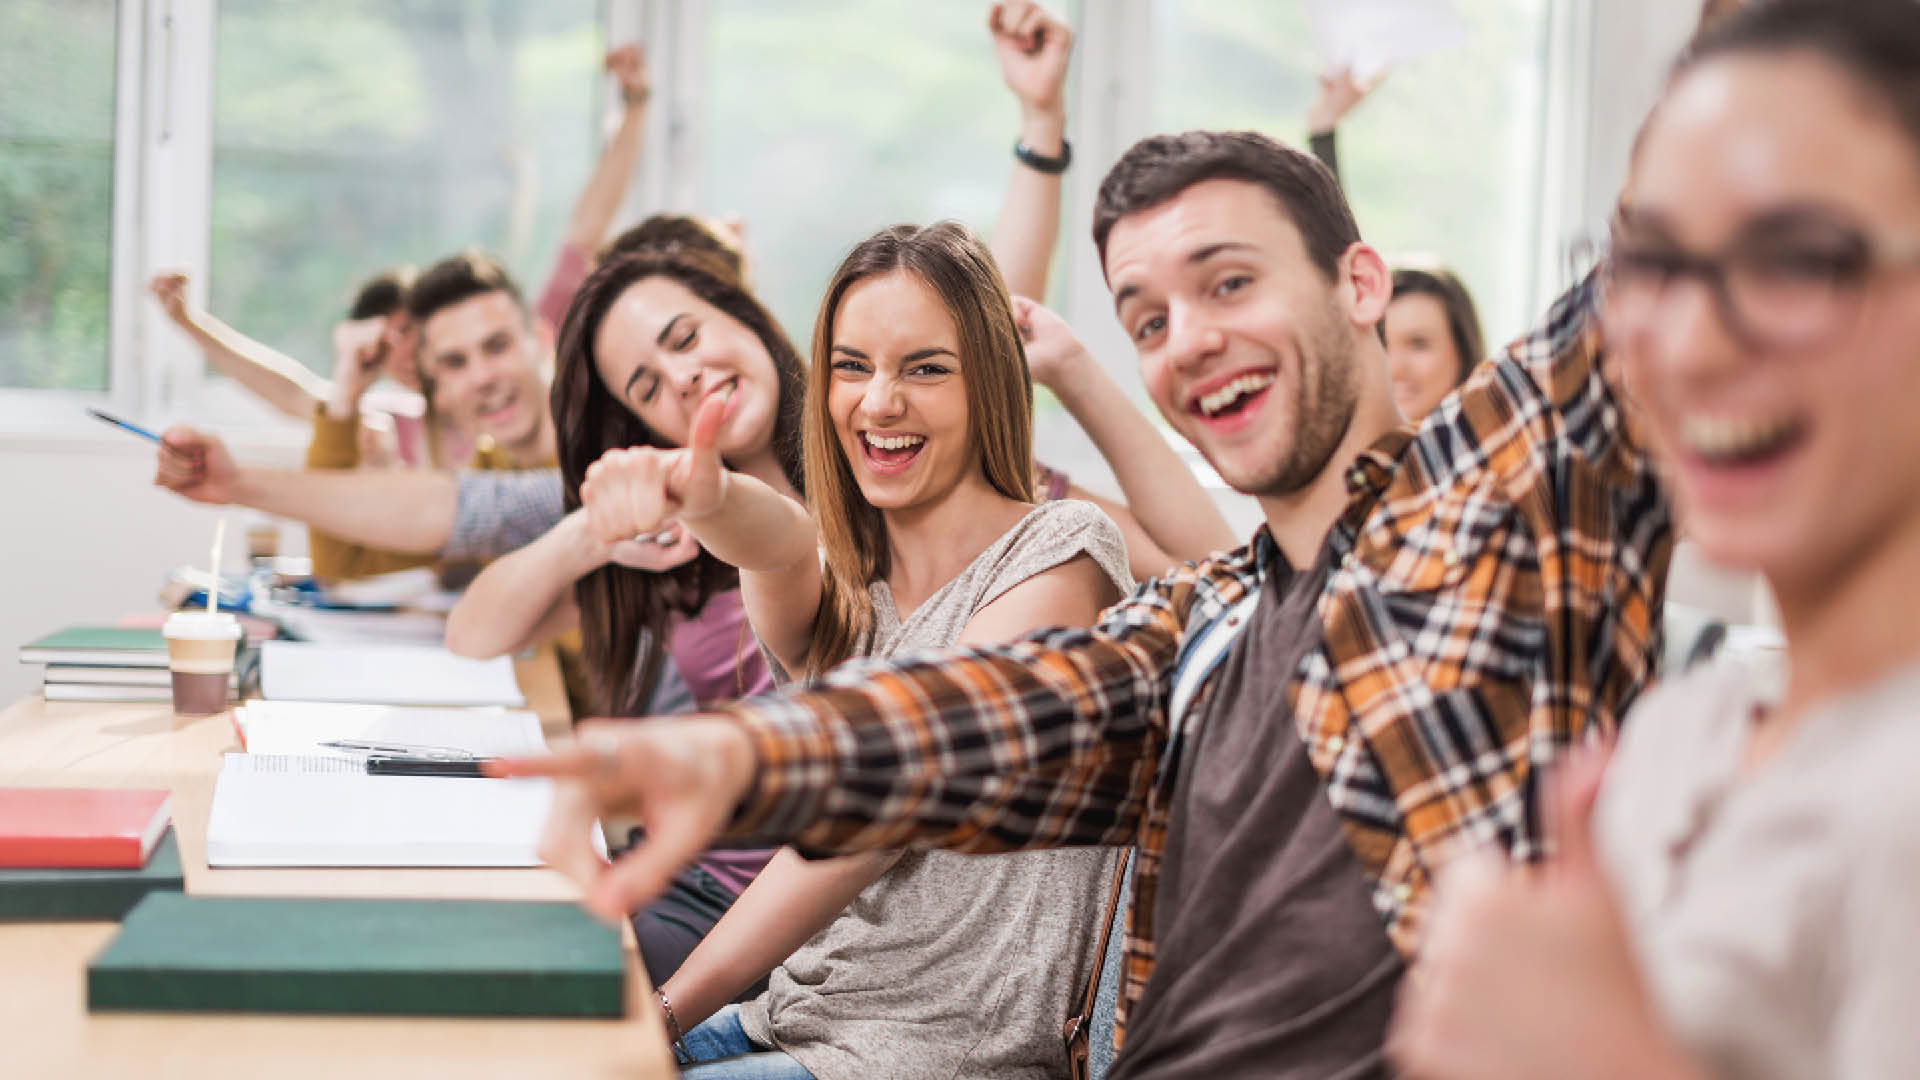 Students celebrating in class